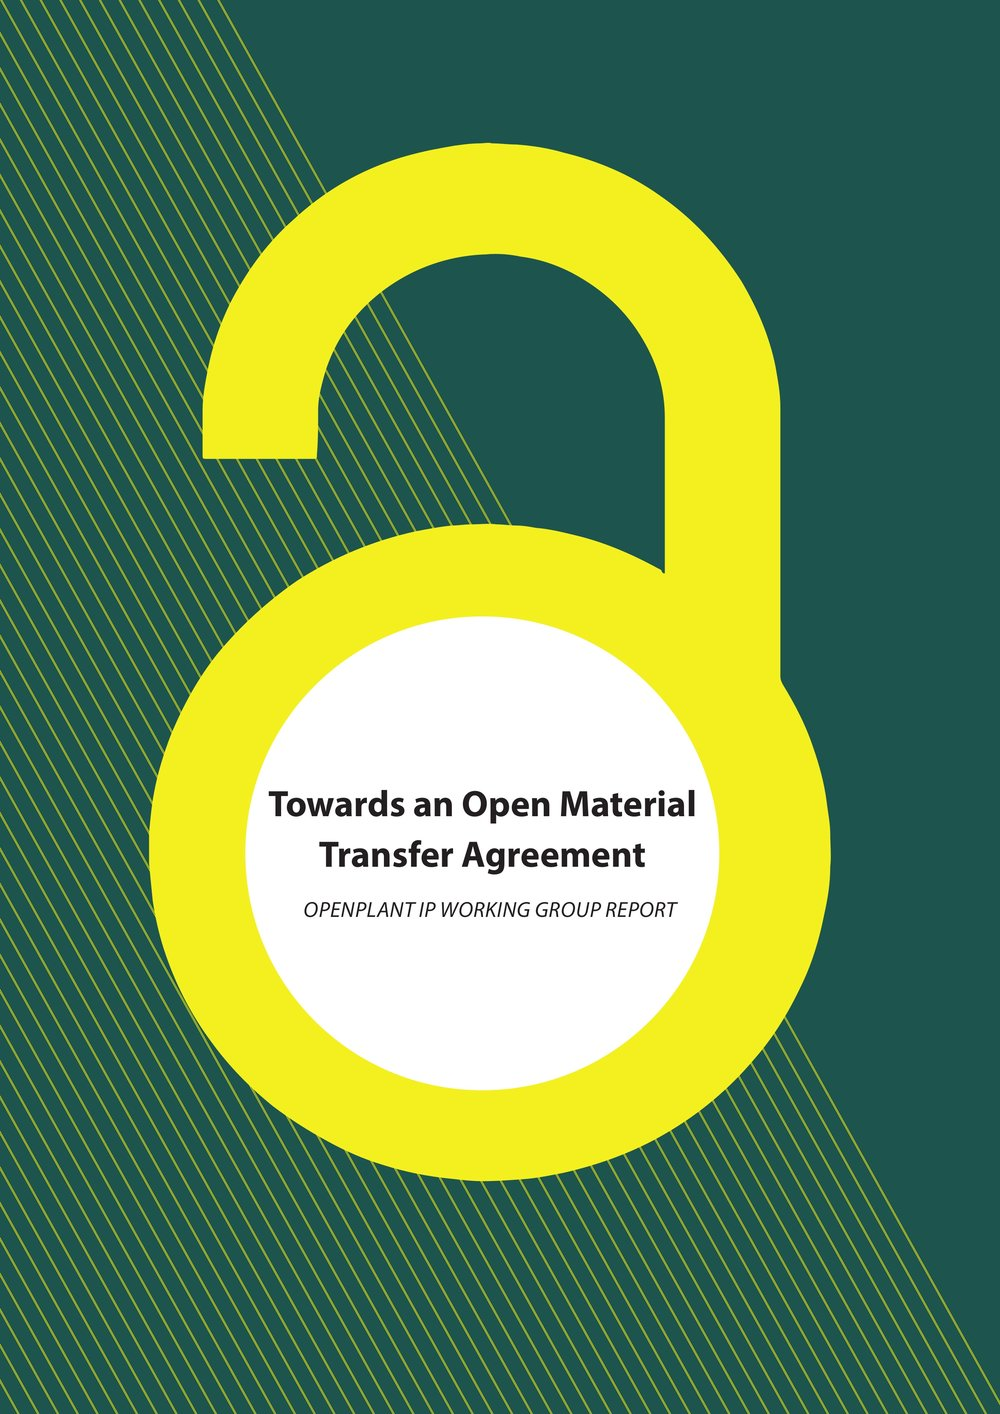 Towards an Open Material Transfer Agreement